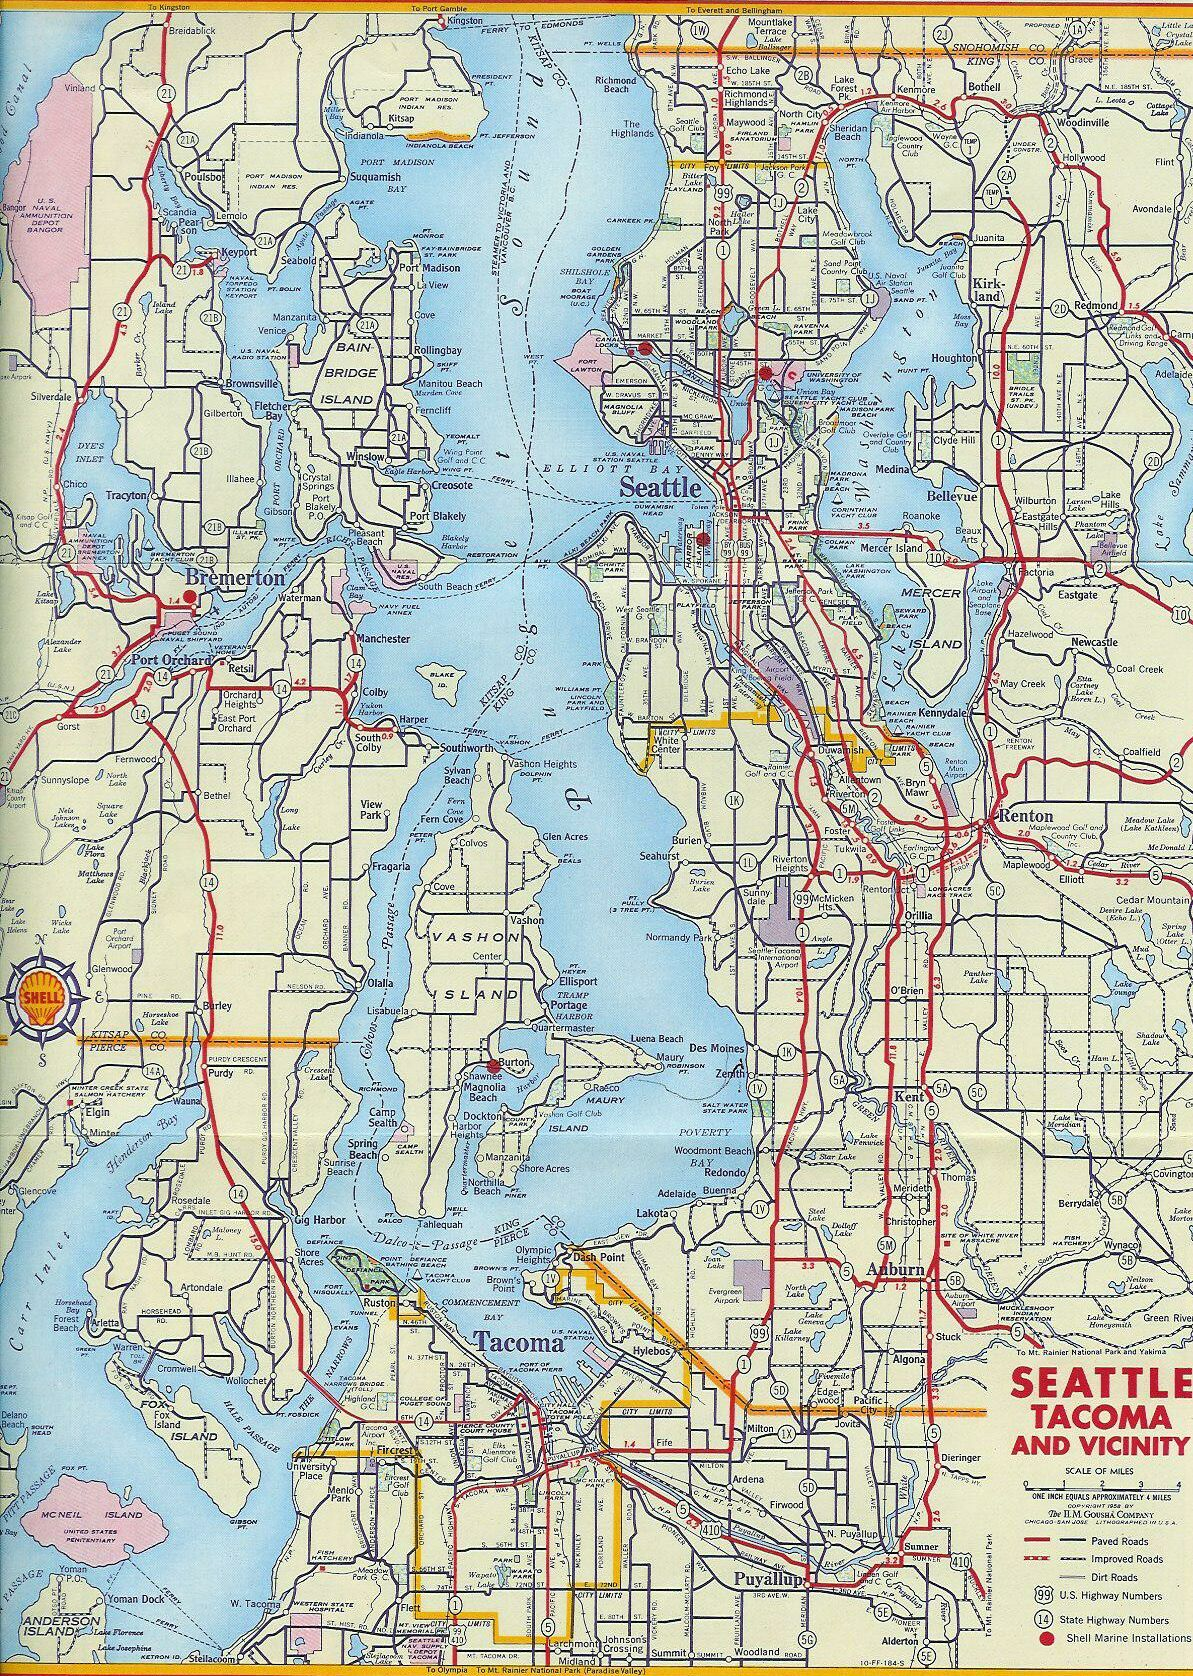 1956 Map Of Seattle Tacoma Area